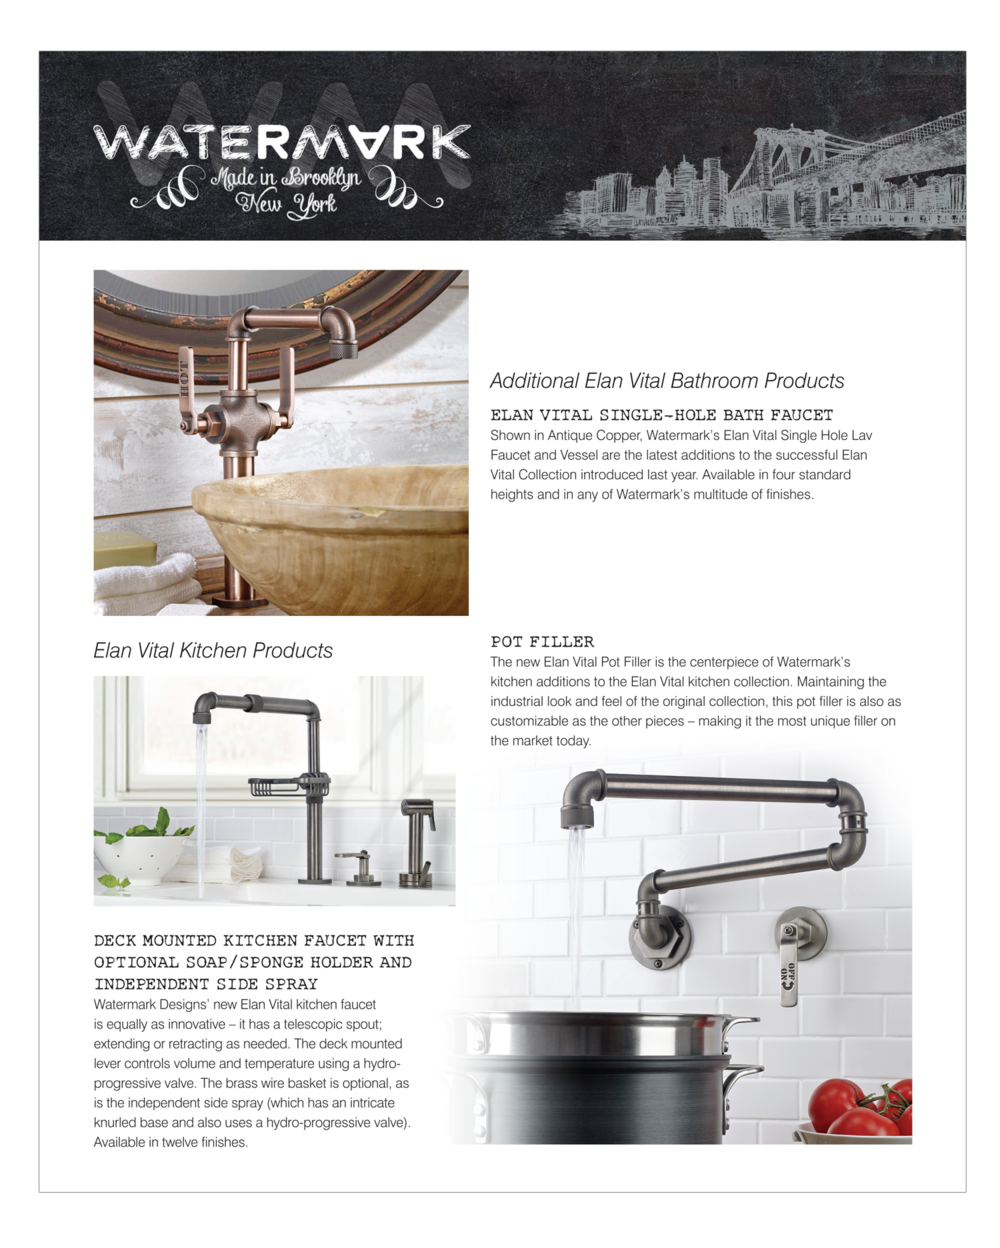 Watermark editorial ad